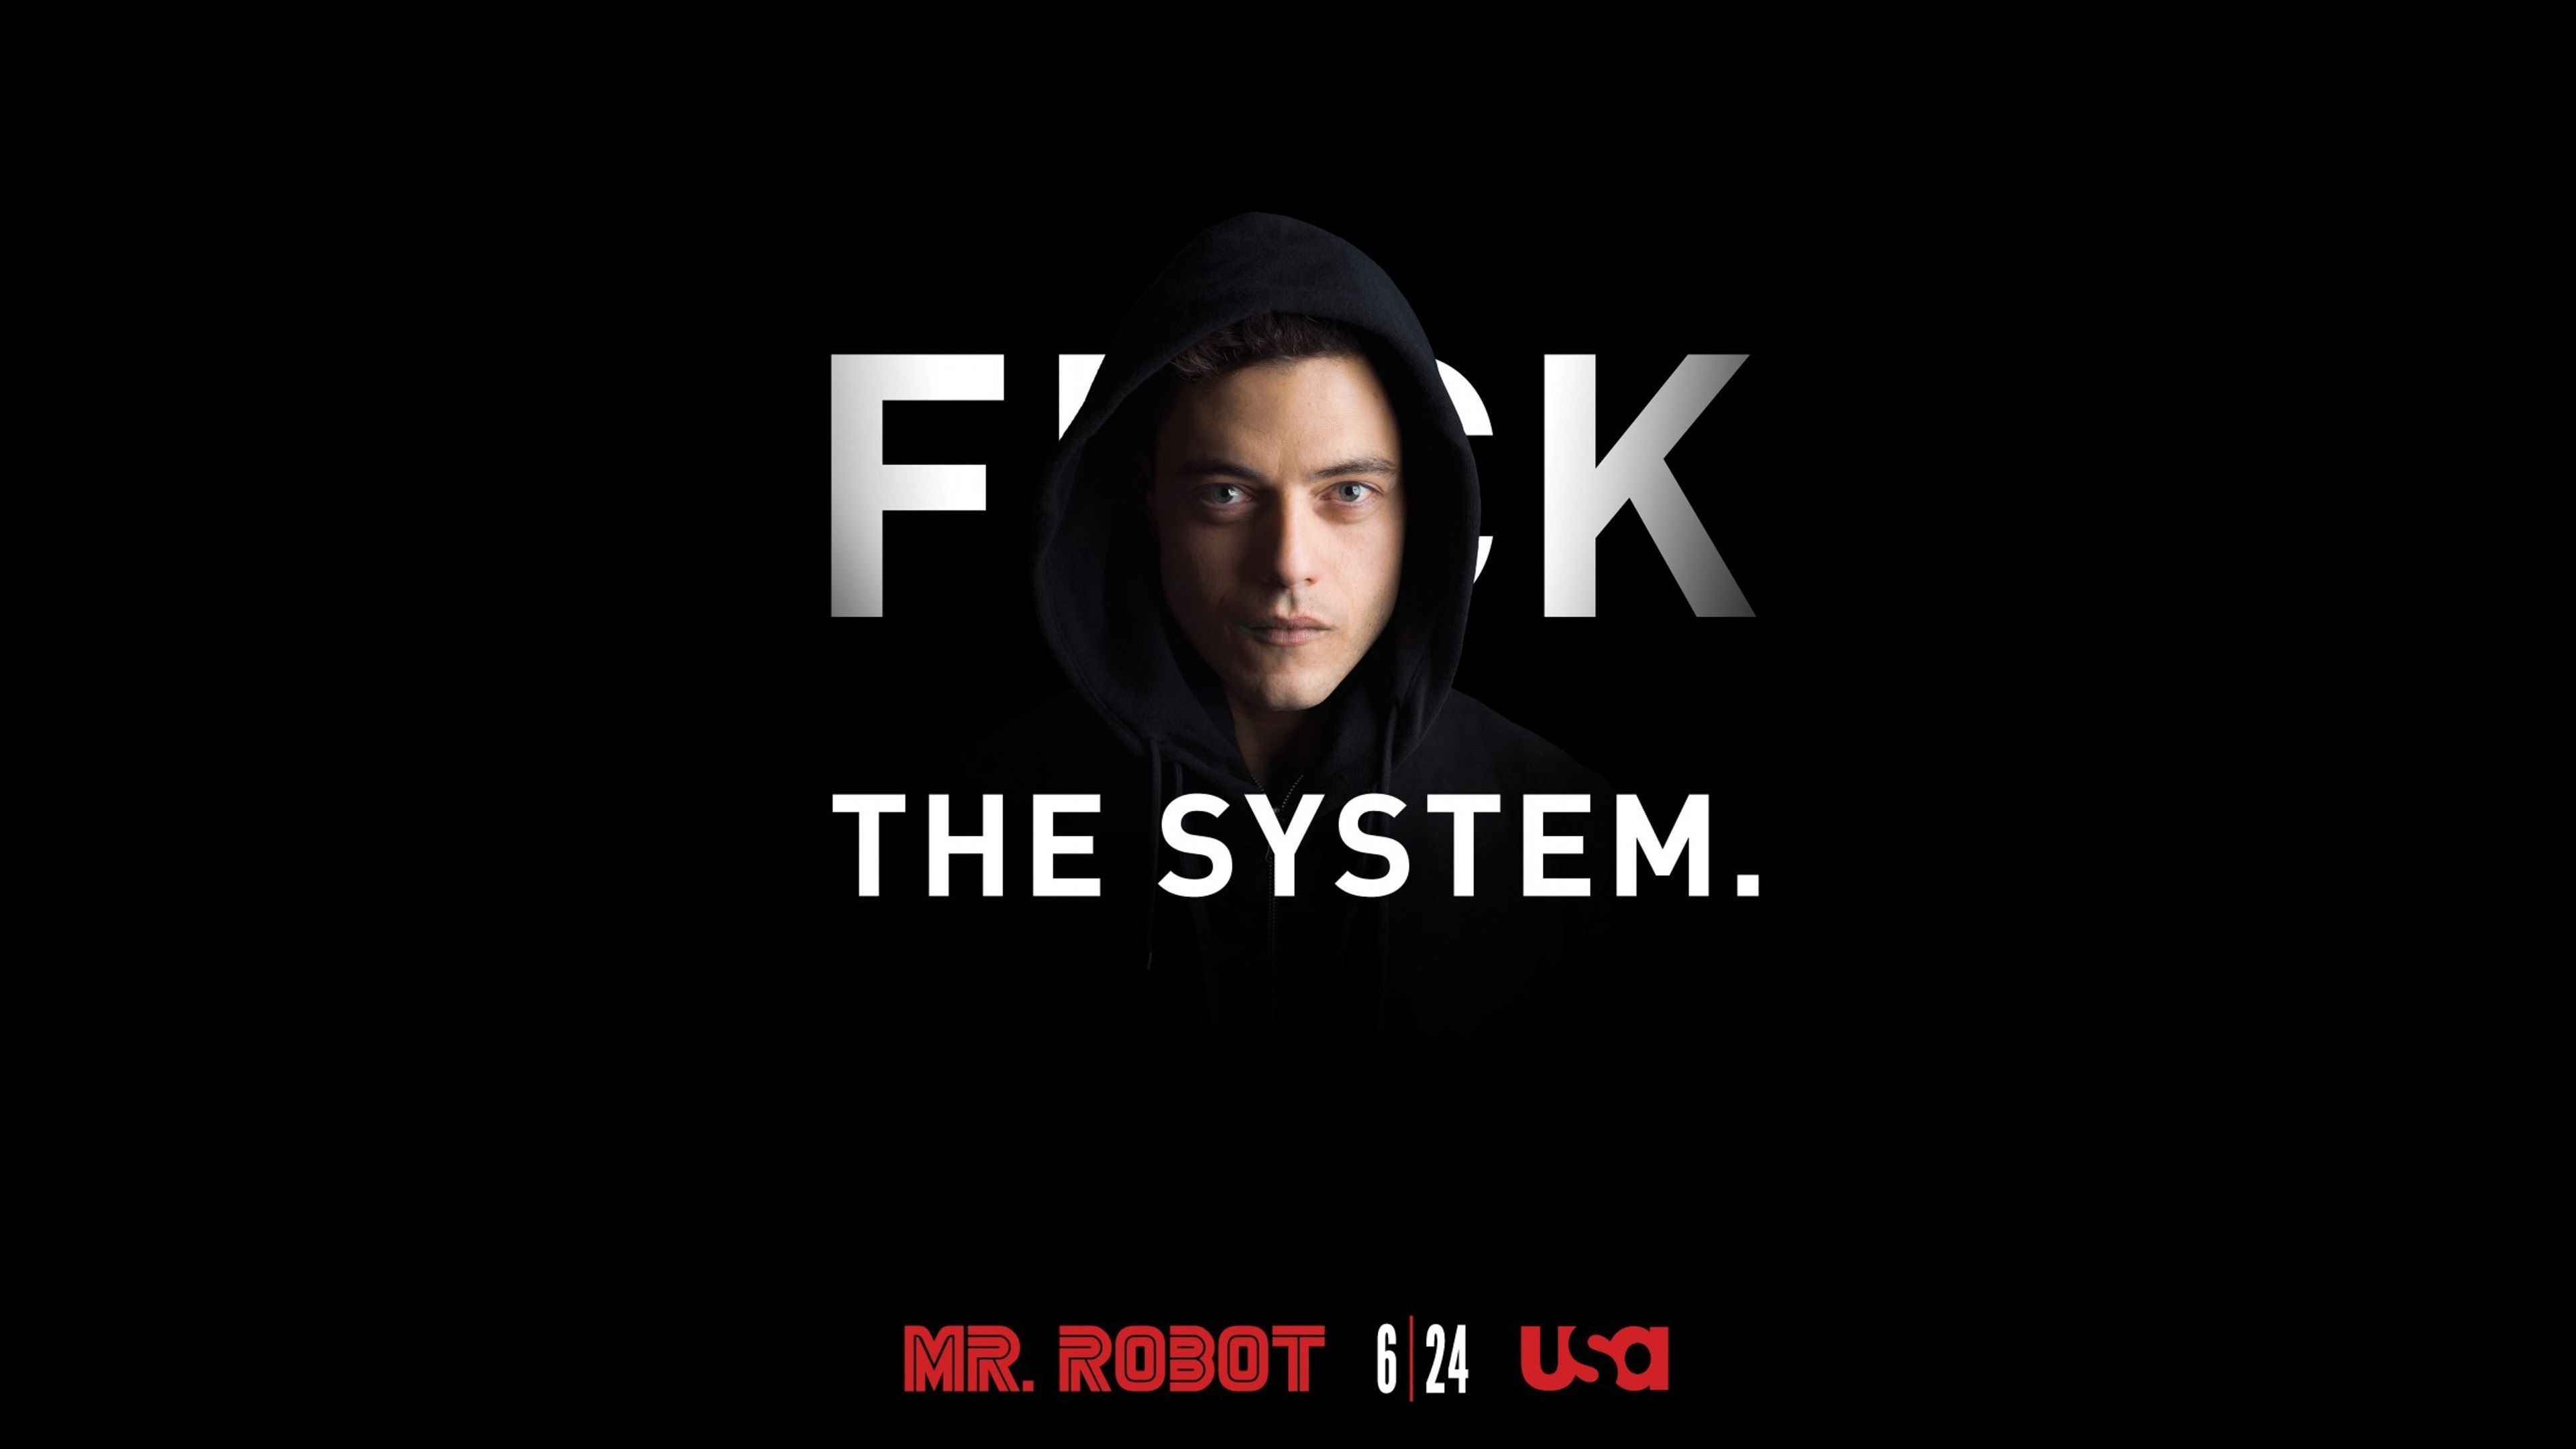 3840x2160 Mr Robot 4k Free Pc Wallpaper в 2019 г